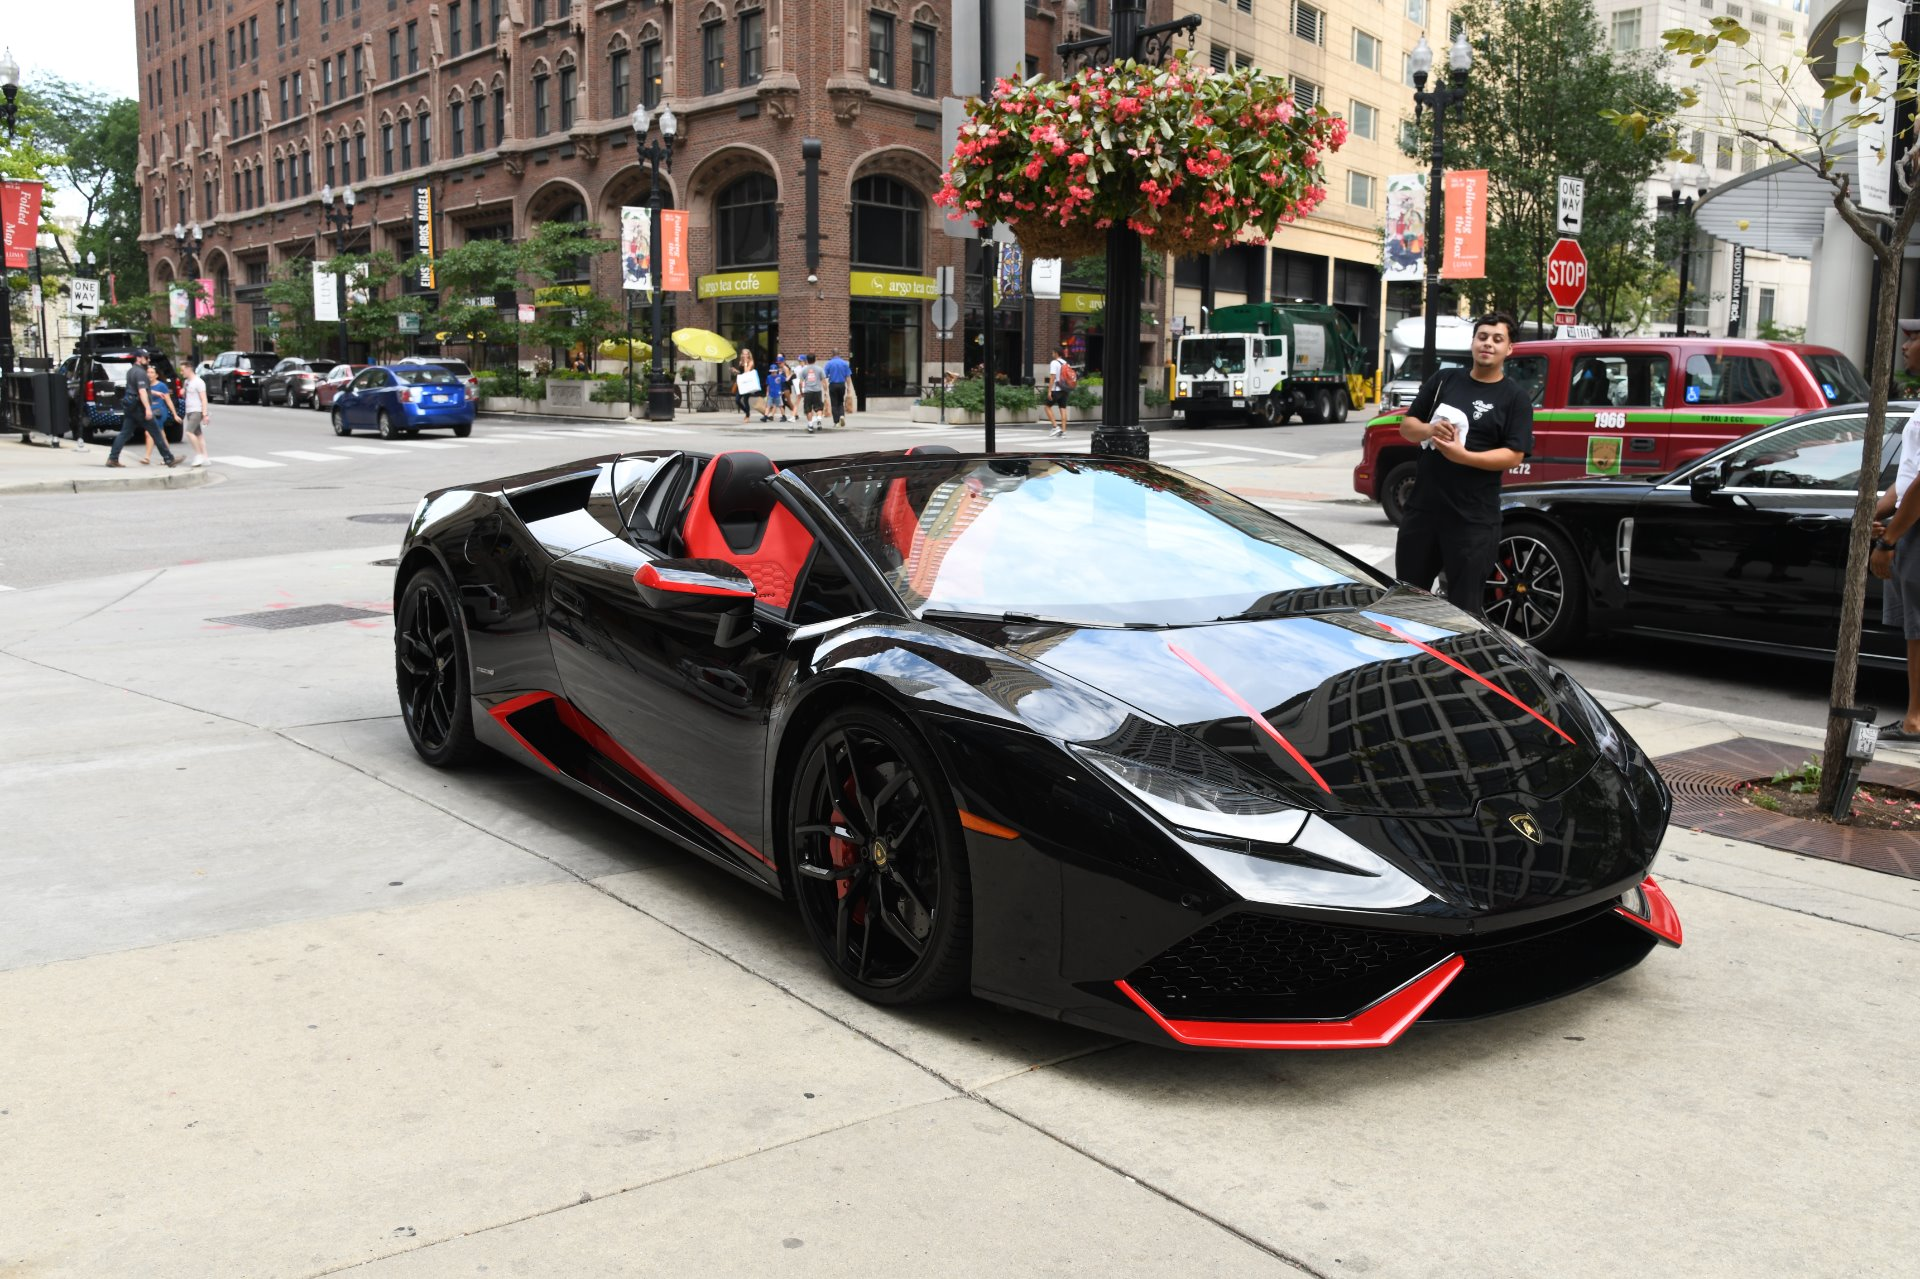 2017 lamborghini huracan spyder lp 610 4 spyder stock gc roland194 for sale near chicago il. Black Bedroom Furniture Sets. Home Design Ideas